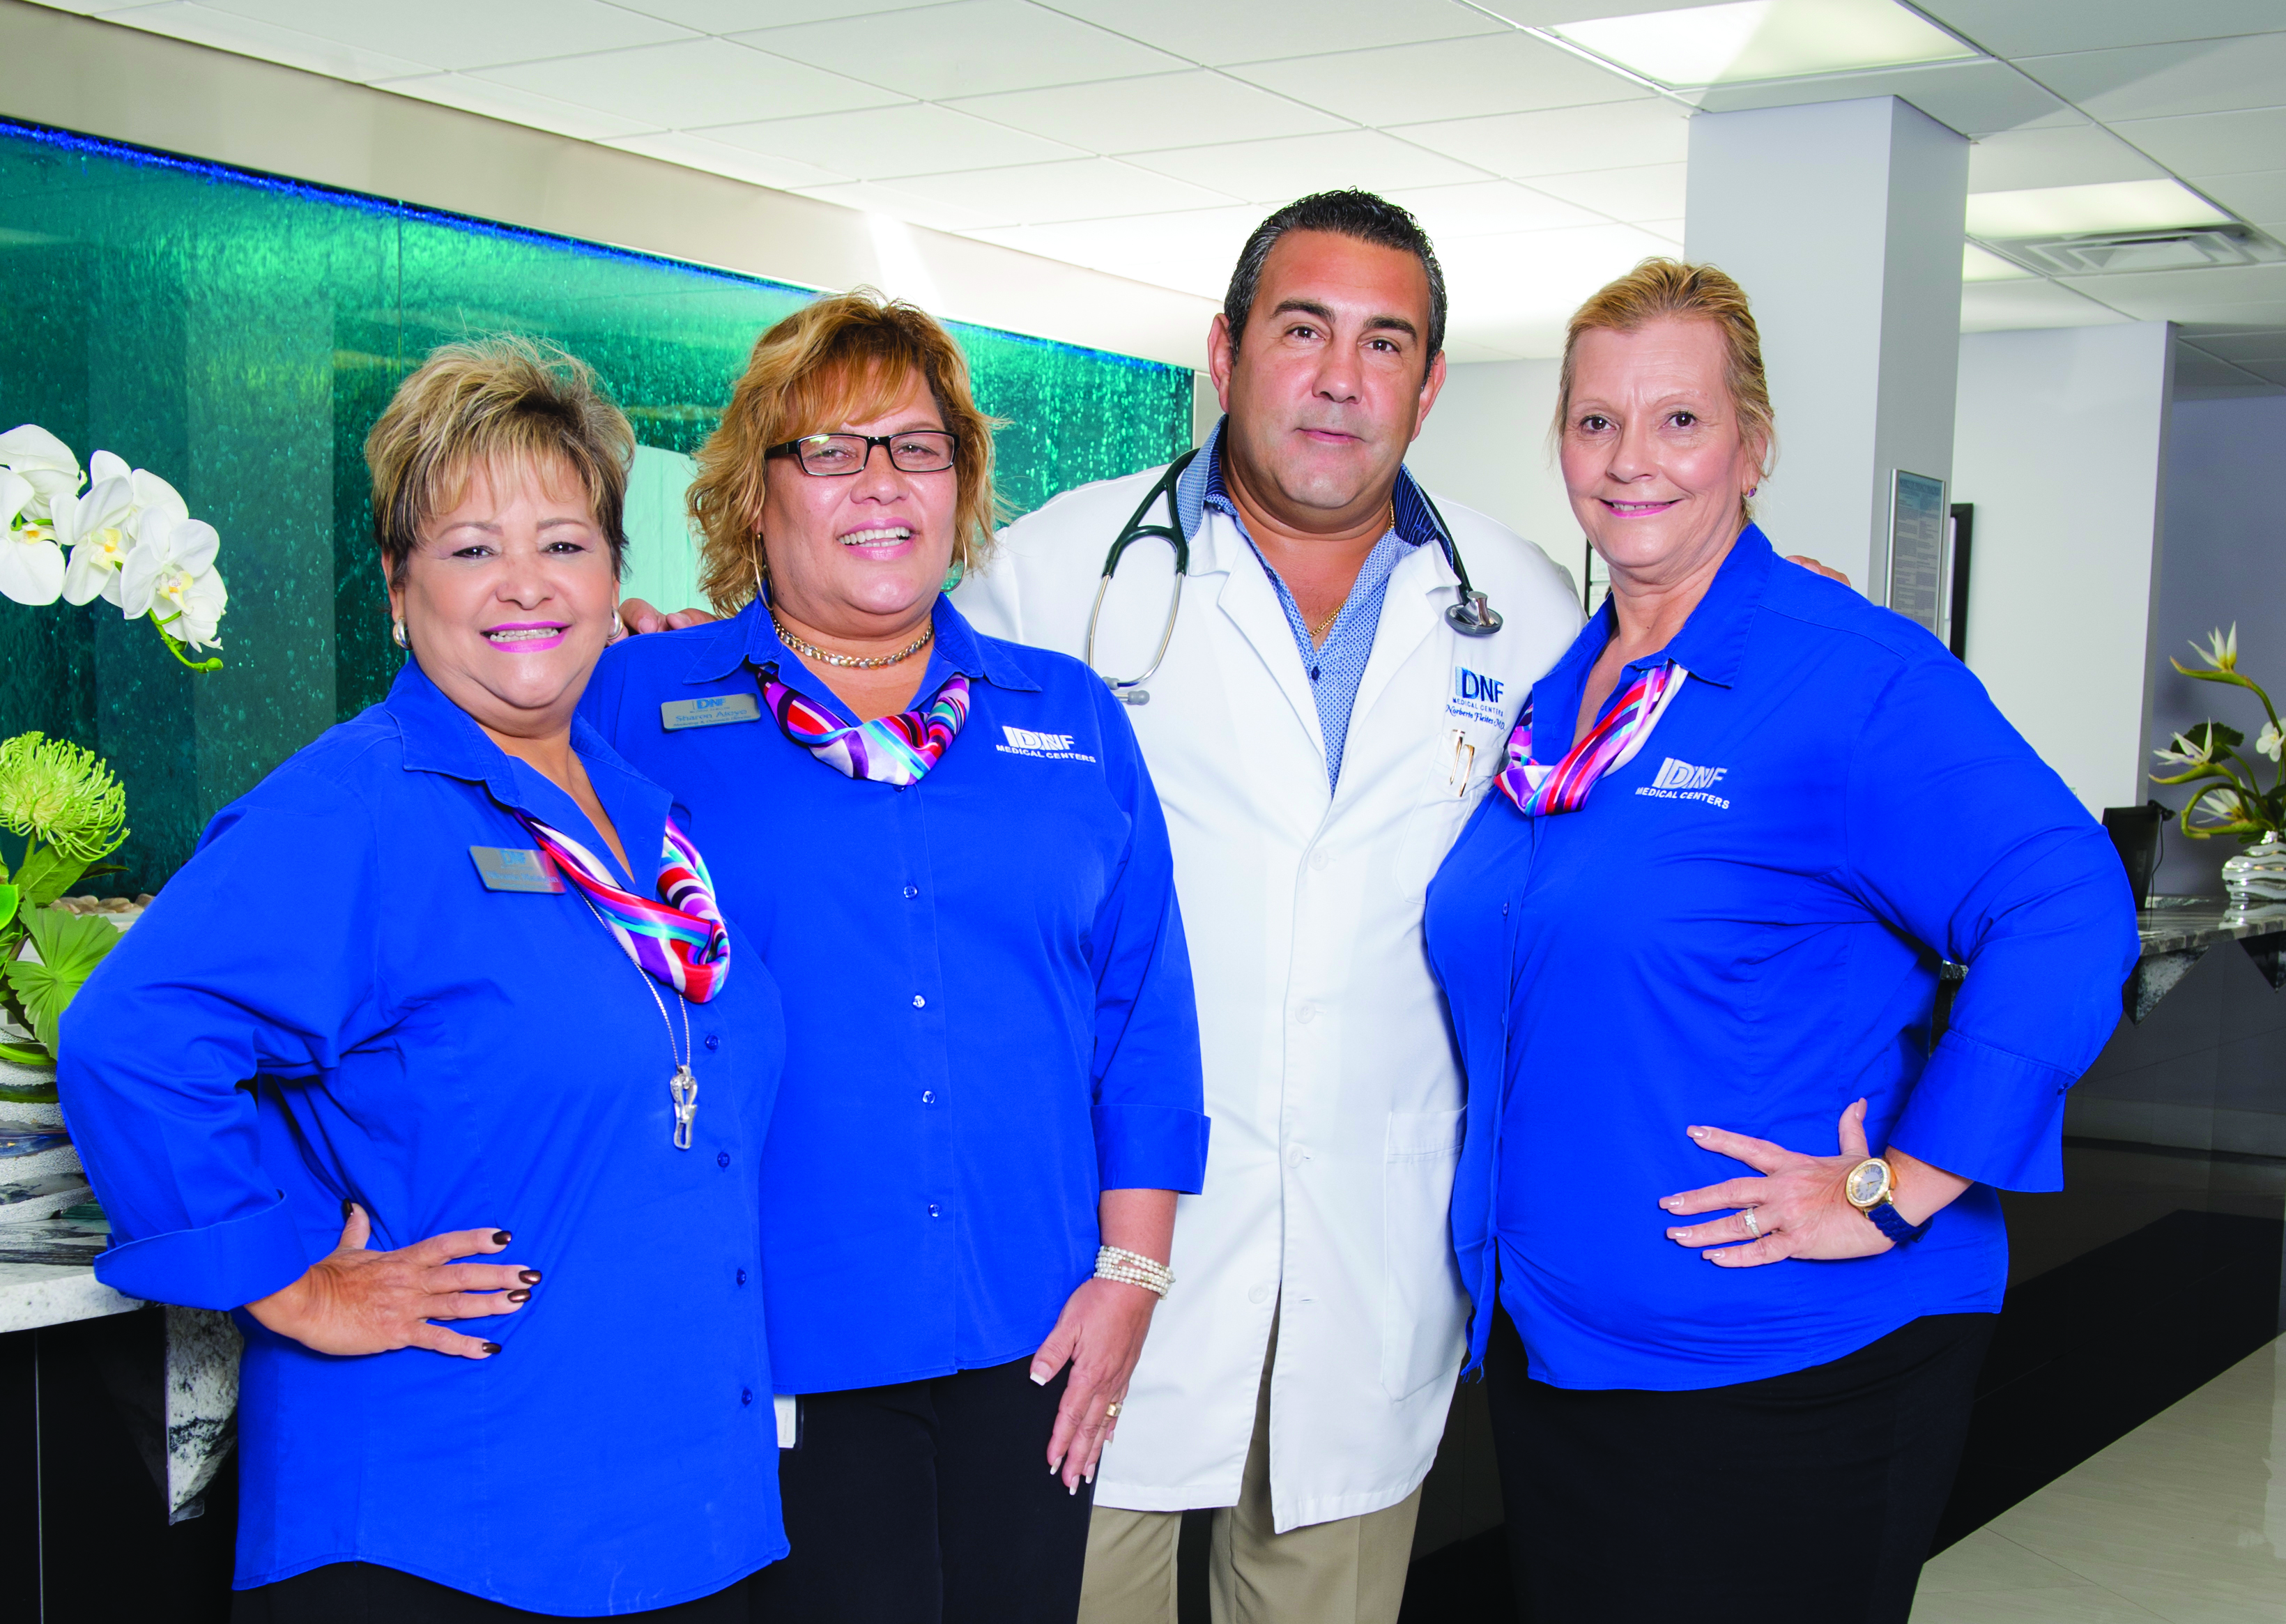 DNF Medical Centers: Compassionate Care for the Community